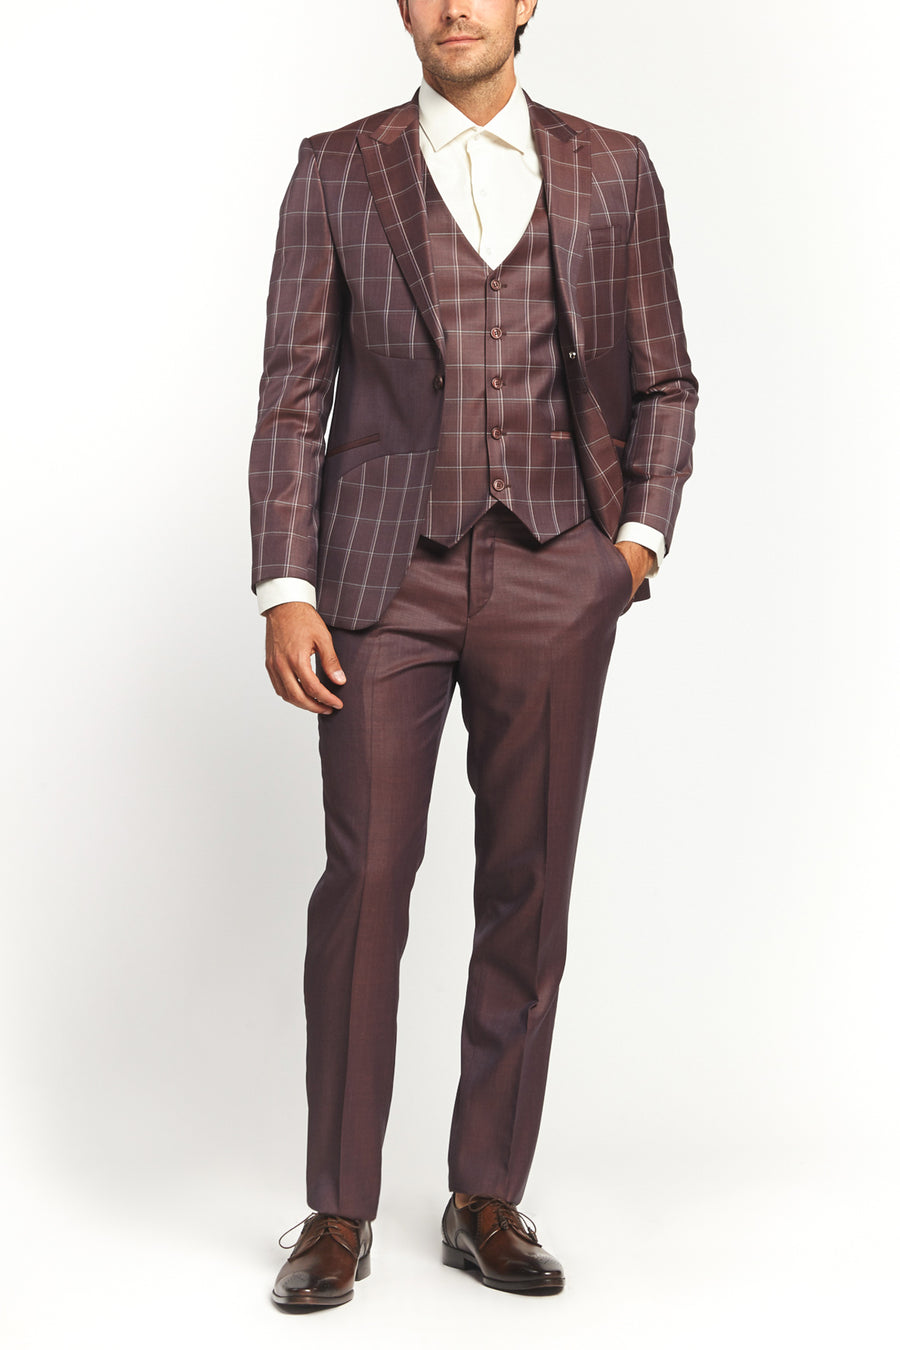 CLASSIC BURGUNDY PATTERN 2-PIECE SUIT